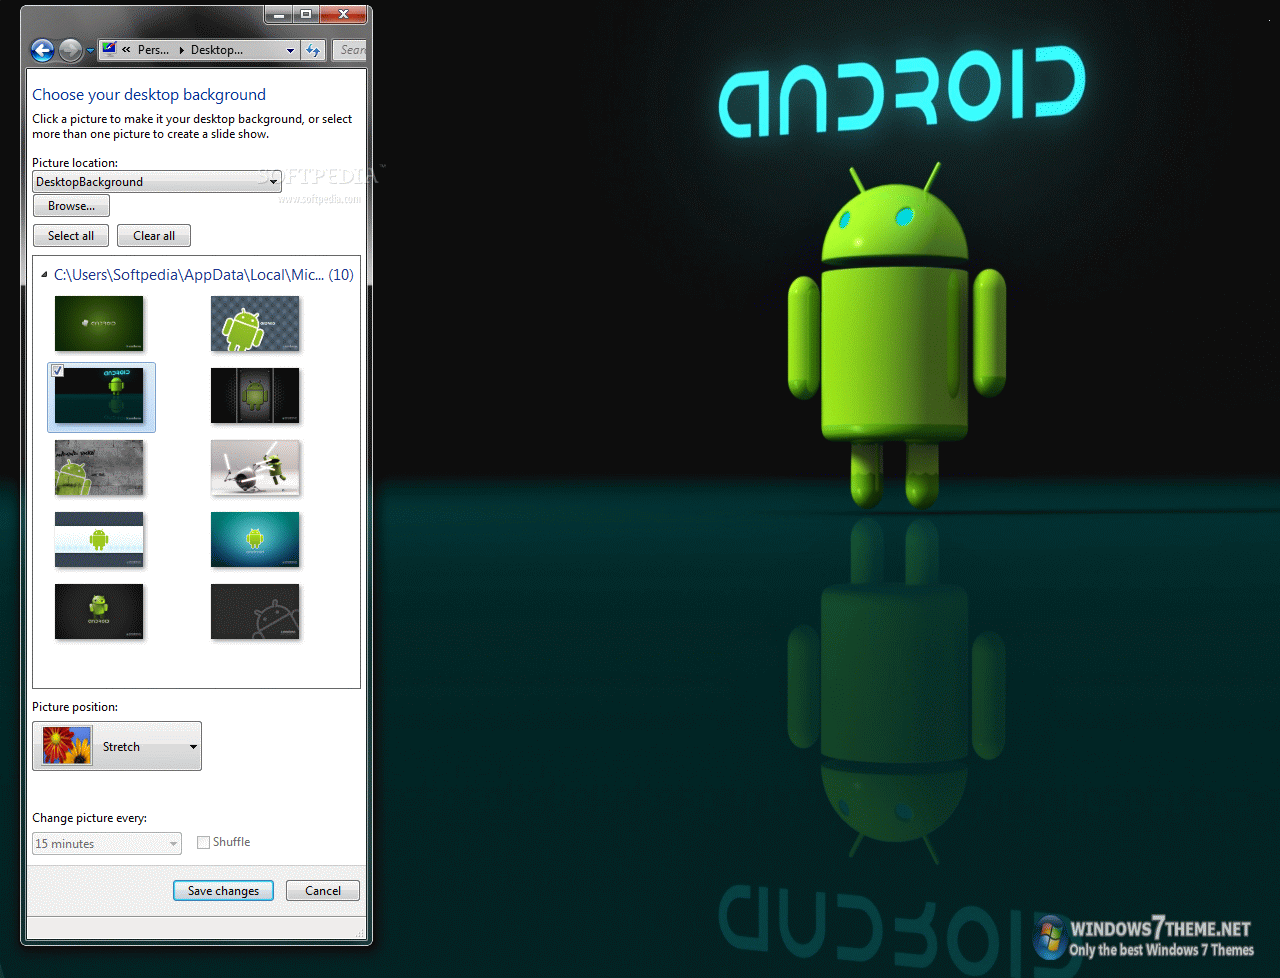 Download Android Windows 7 Theme 1 0